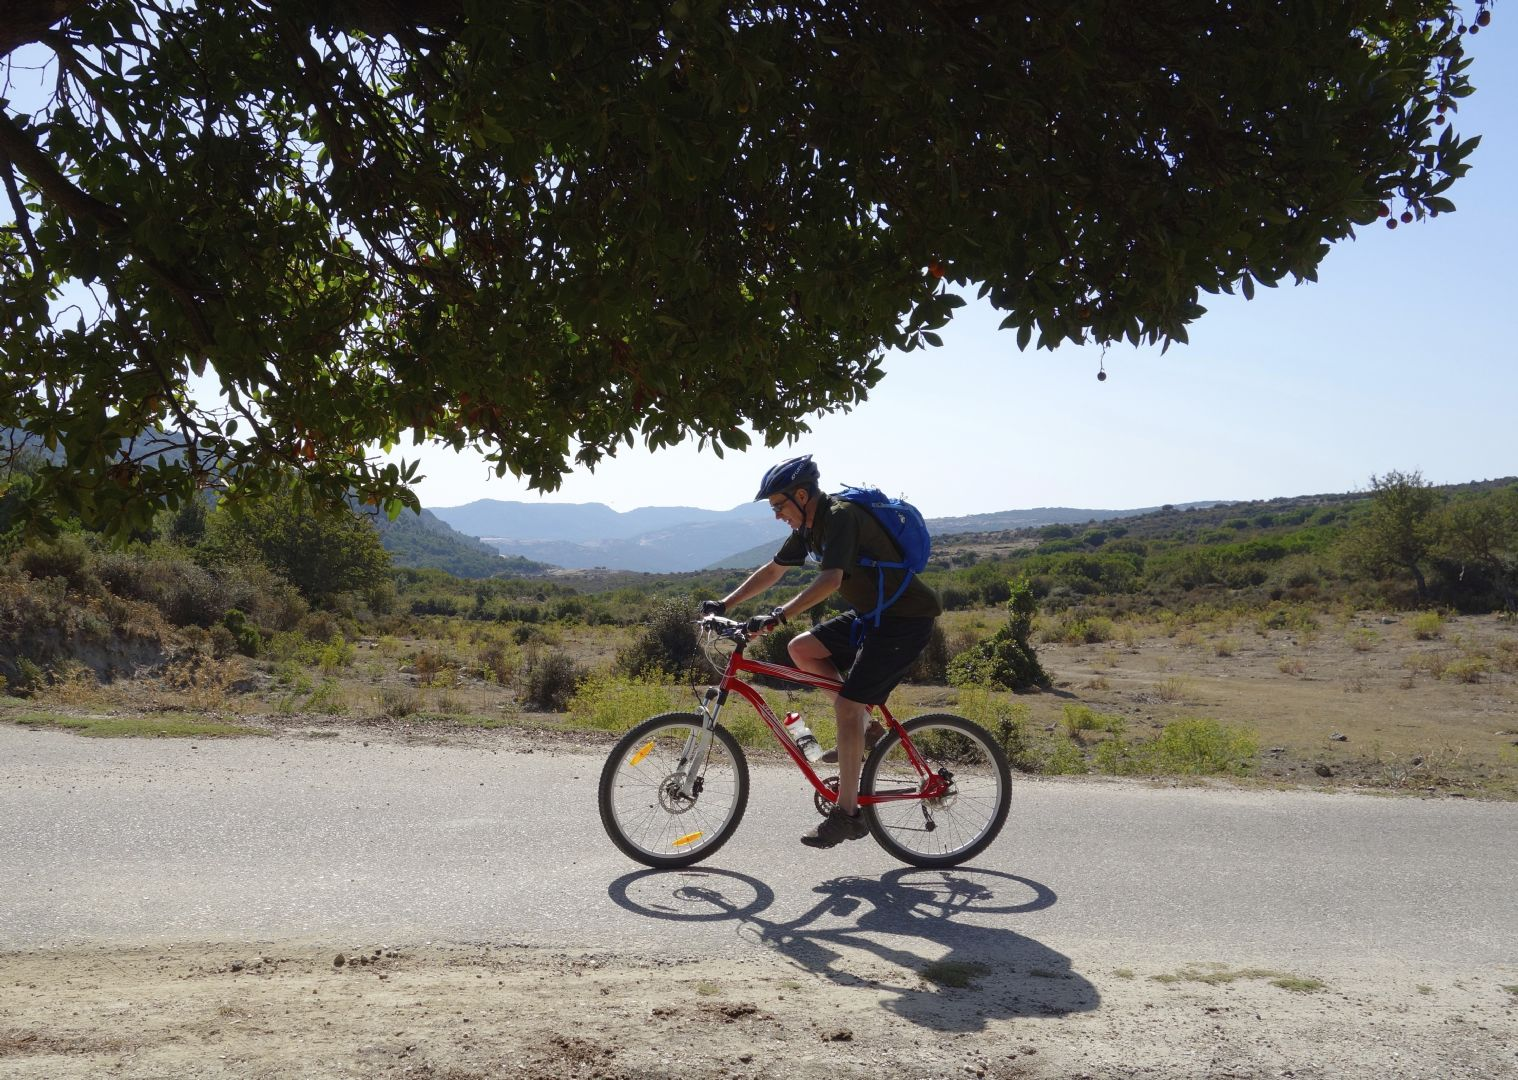 mountainbikingsardinia2.jpg - Sardinia - Coast to Coast - Italia Mountain Biking